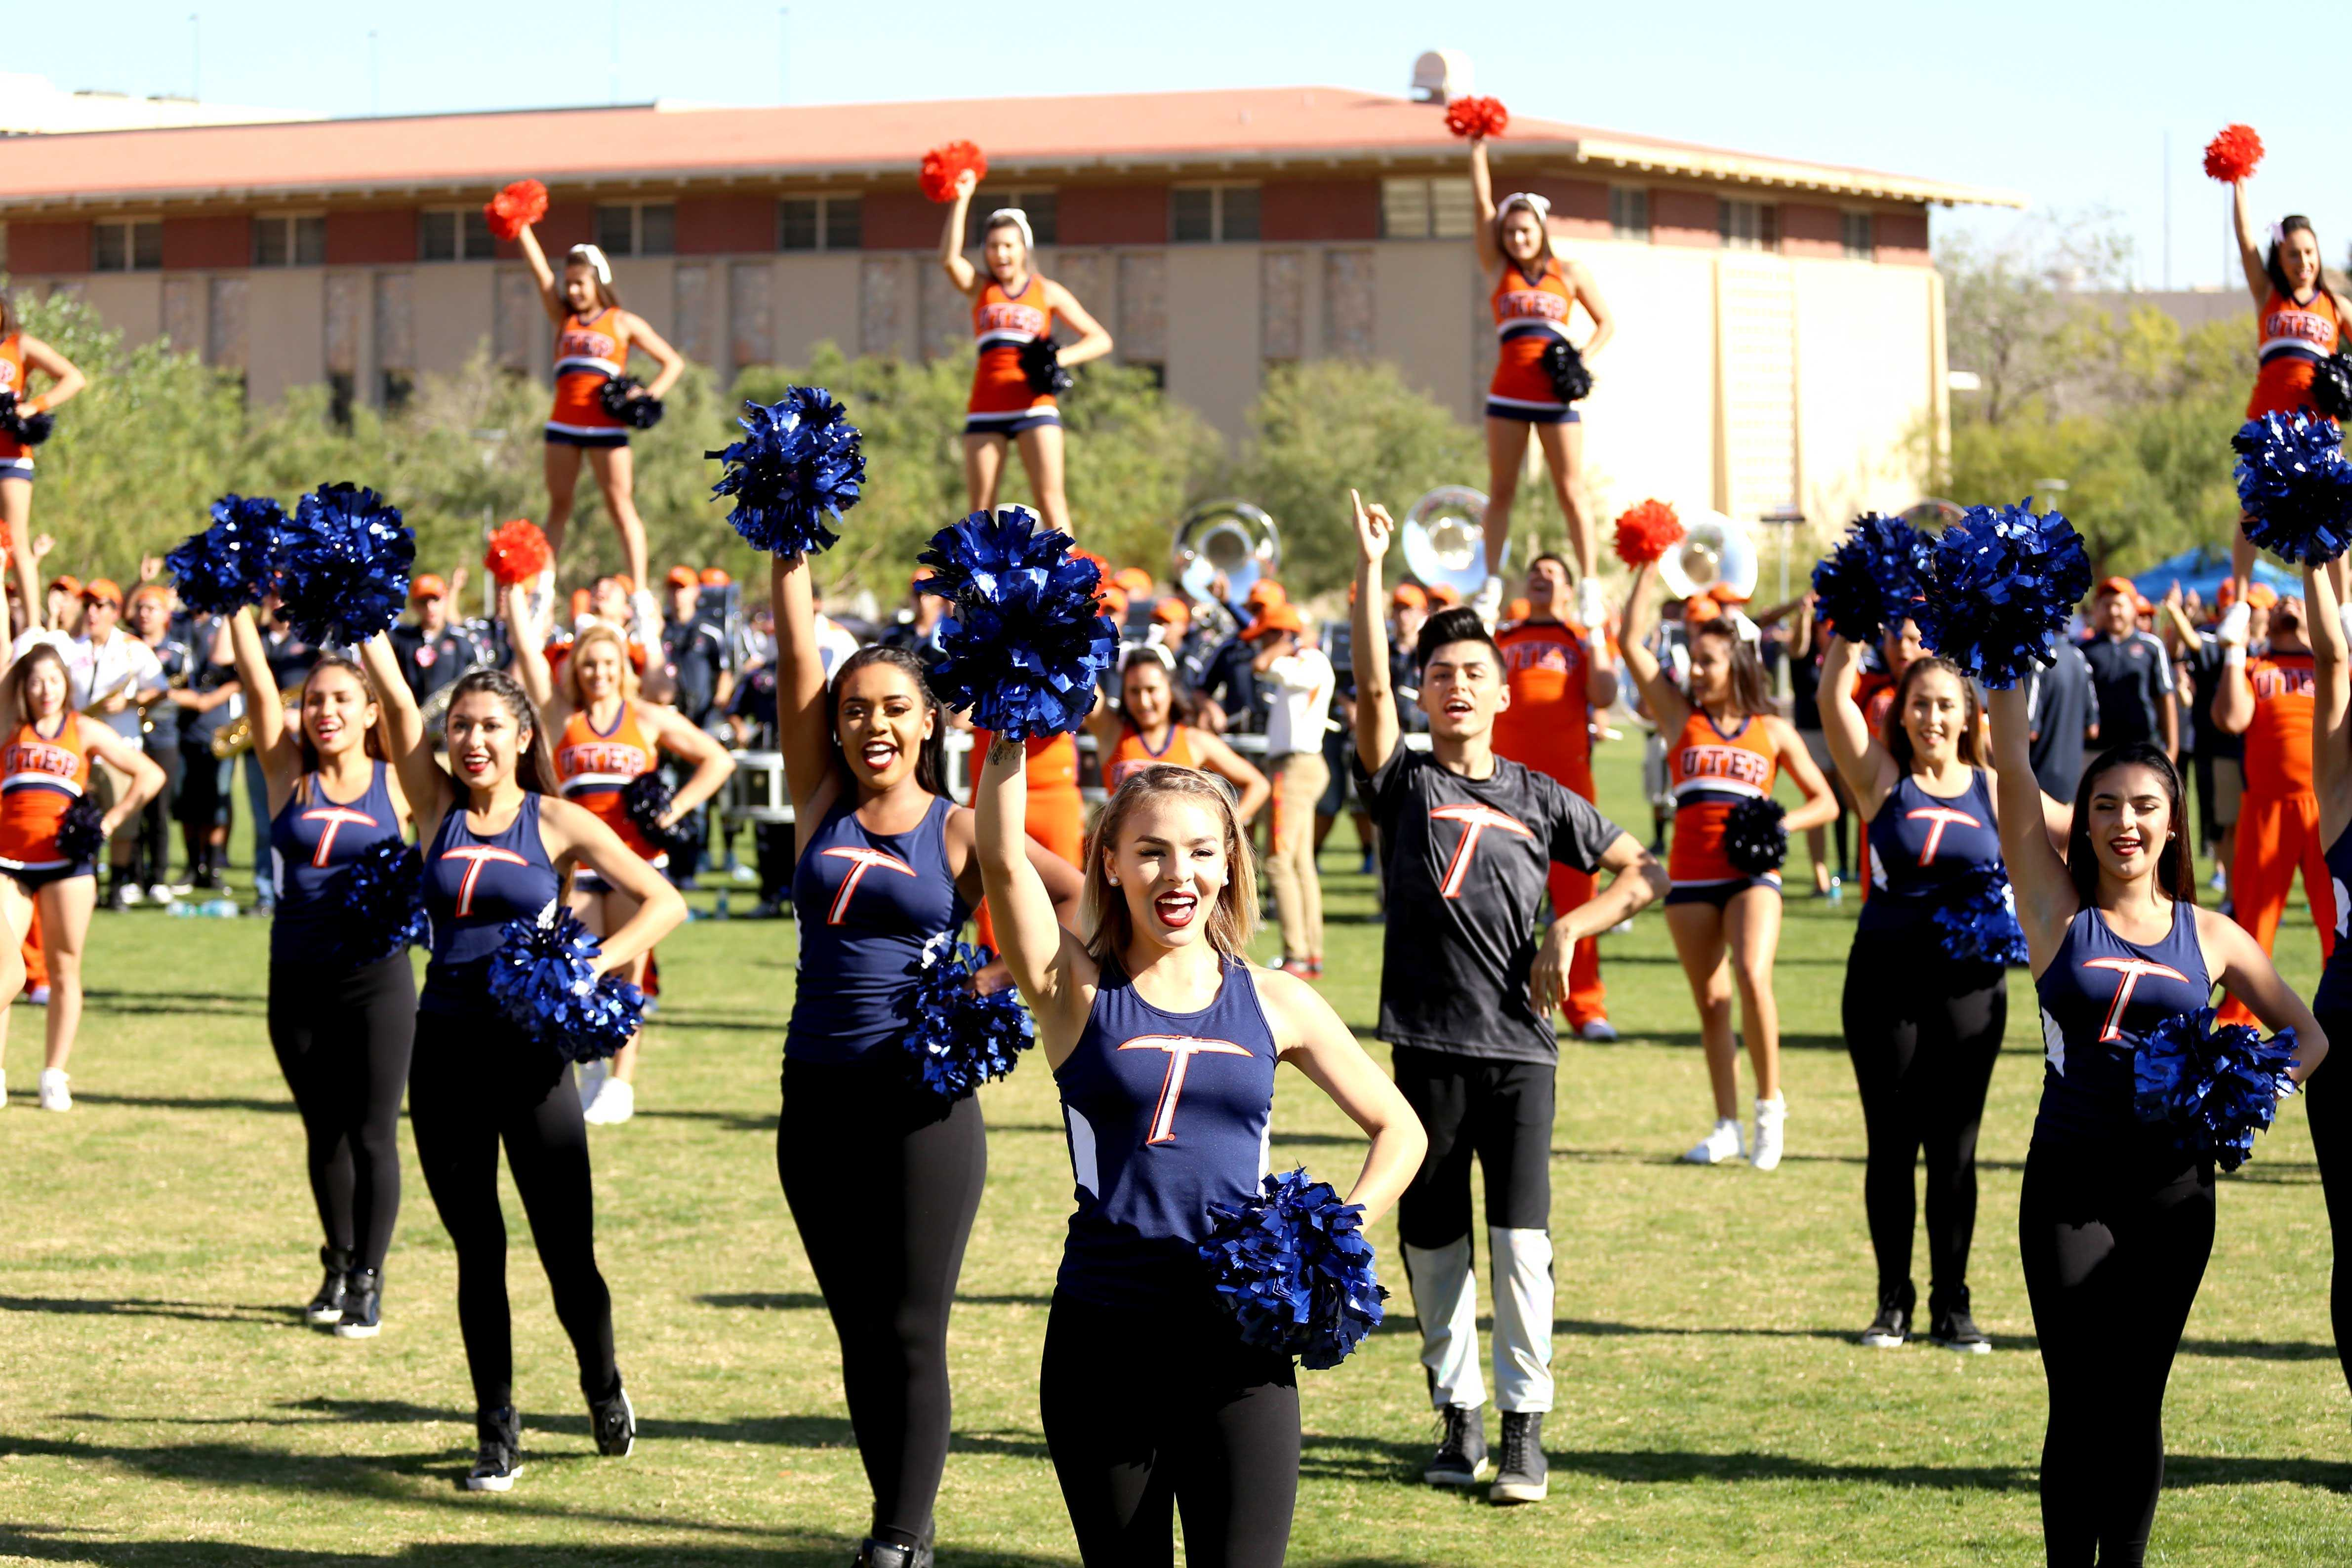 UTEP+cheerleaders+and+goldiggers+perform+at+the+pep+rally.+